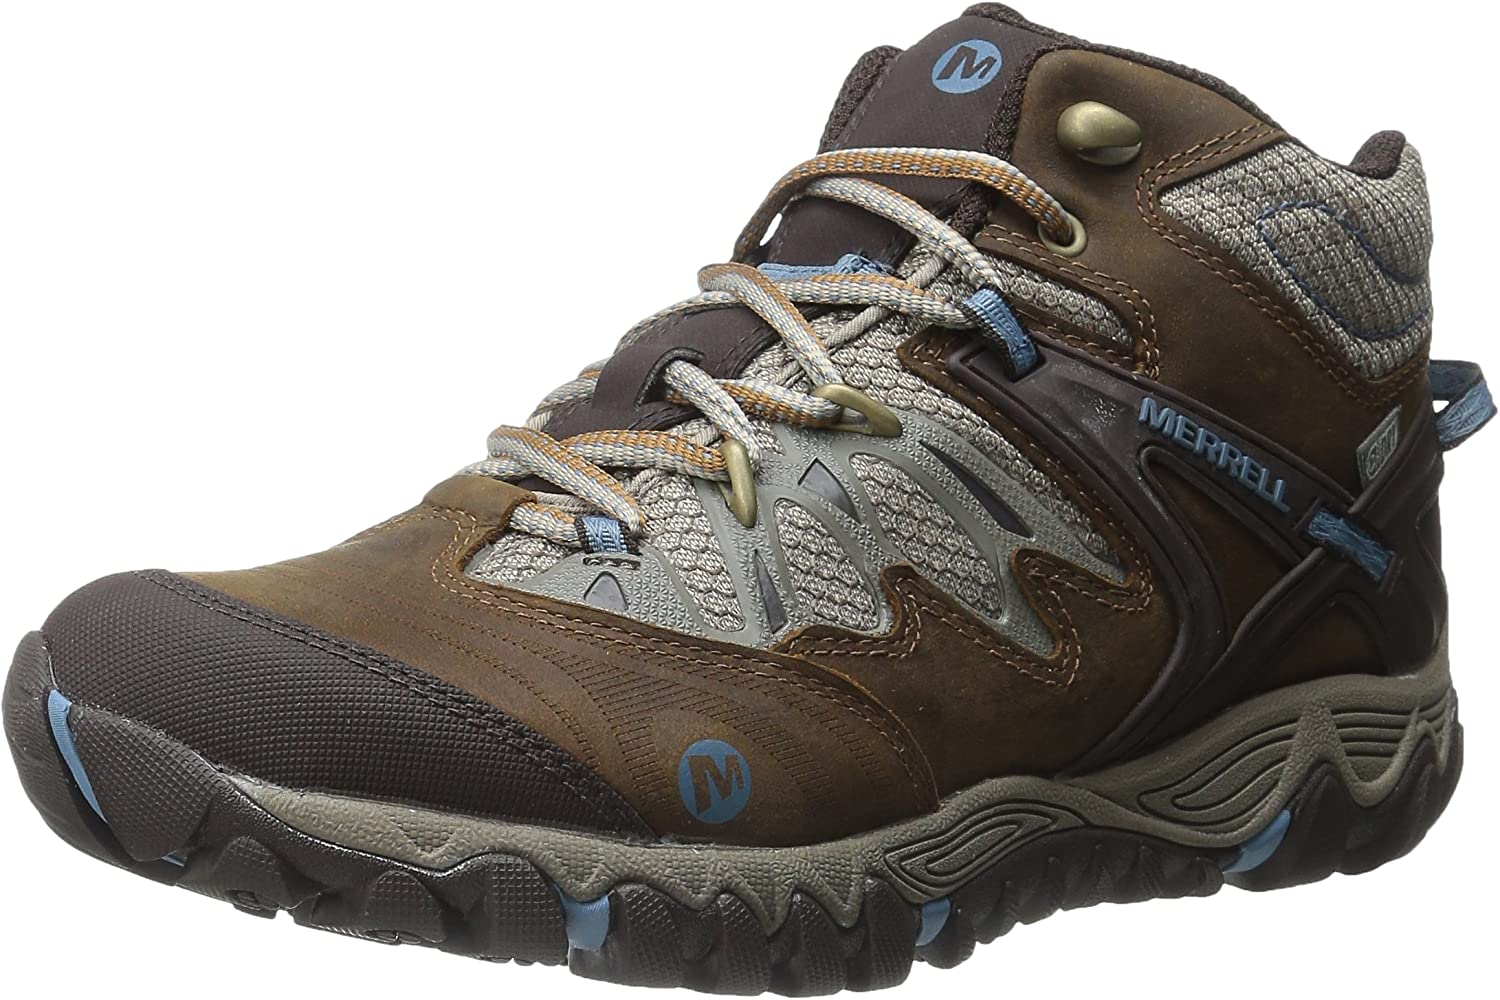 Merrell Women's All Out Blaze Mid Waterproof Hiking Boot Black